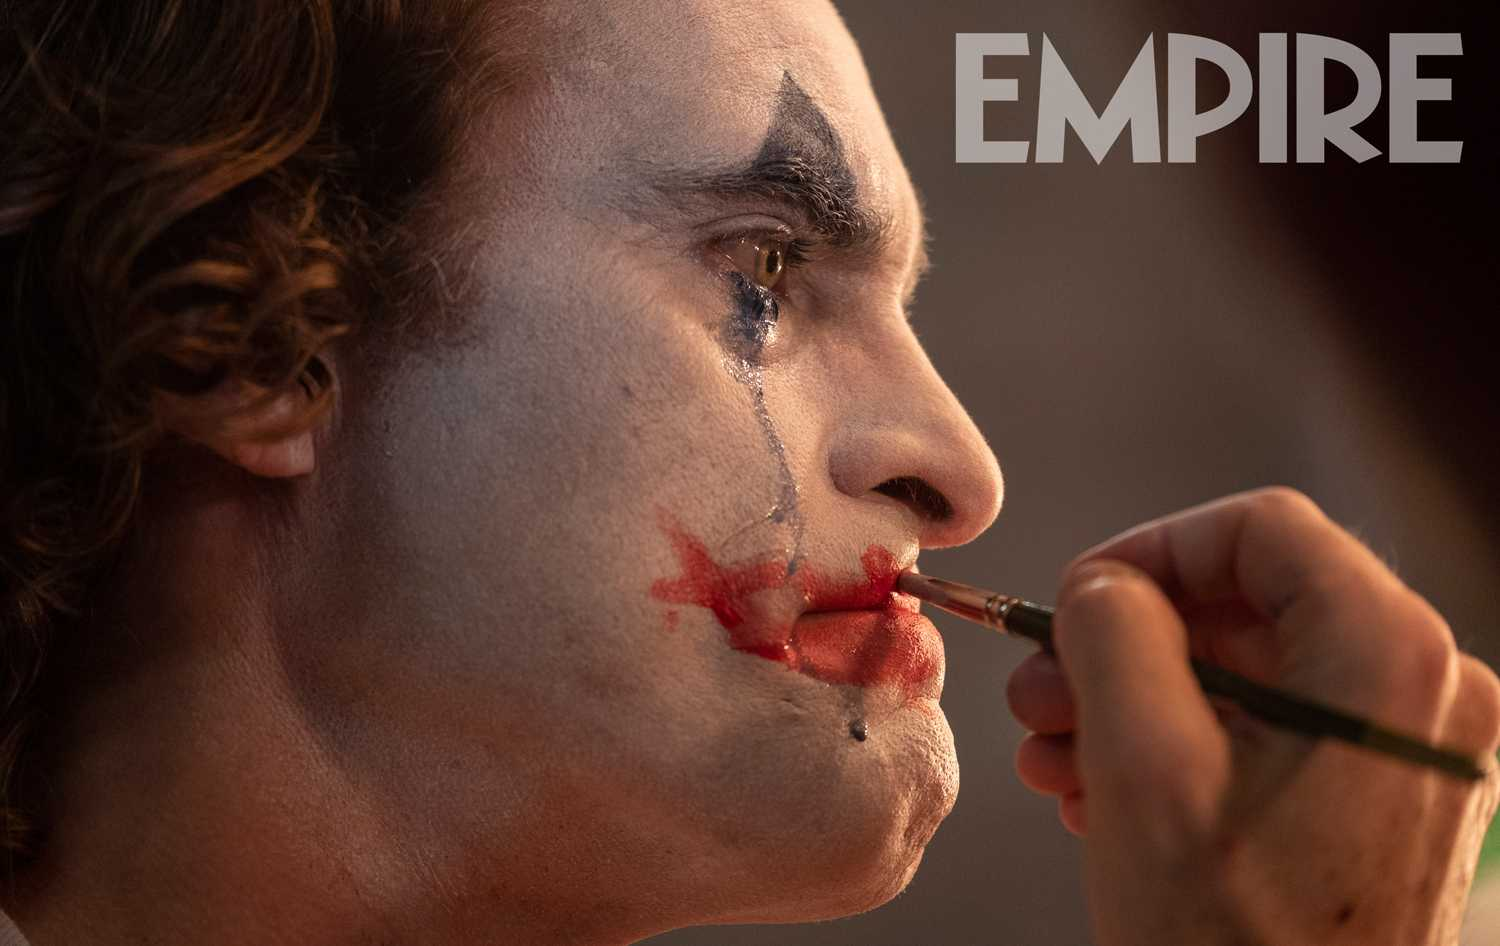 joker-empire-exclusive.jpg?quality=50&format=jpg